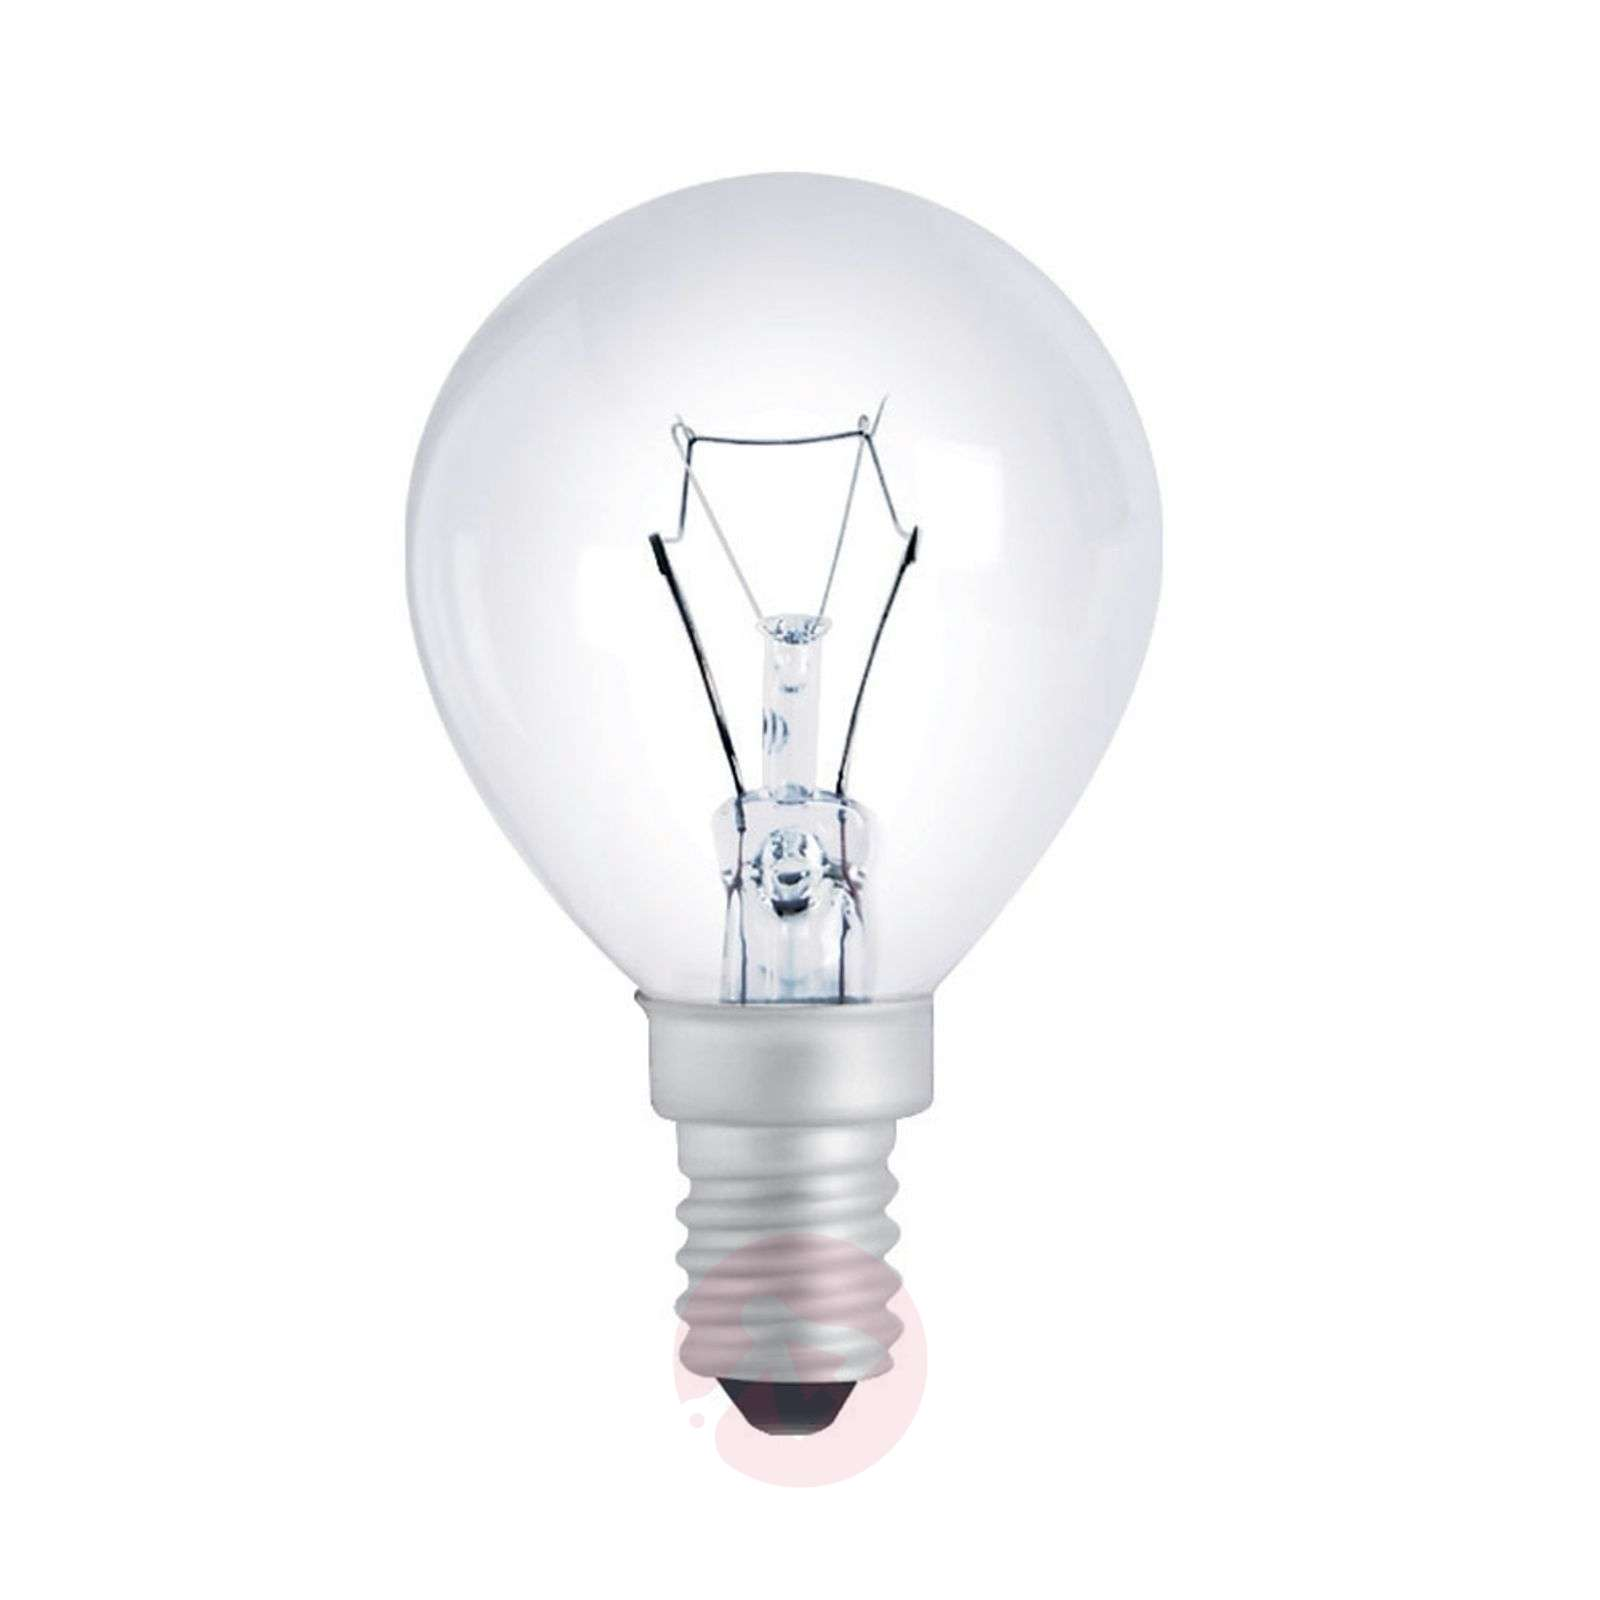 E14 40 W clear golf ball bulb-7504204-01